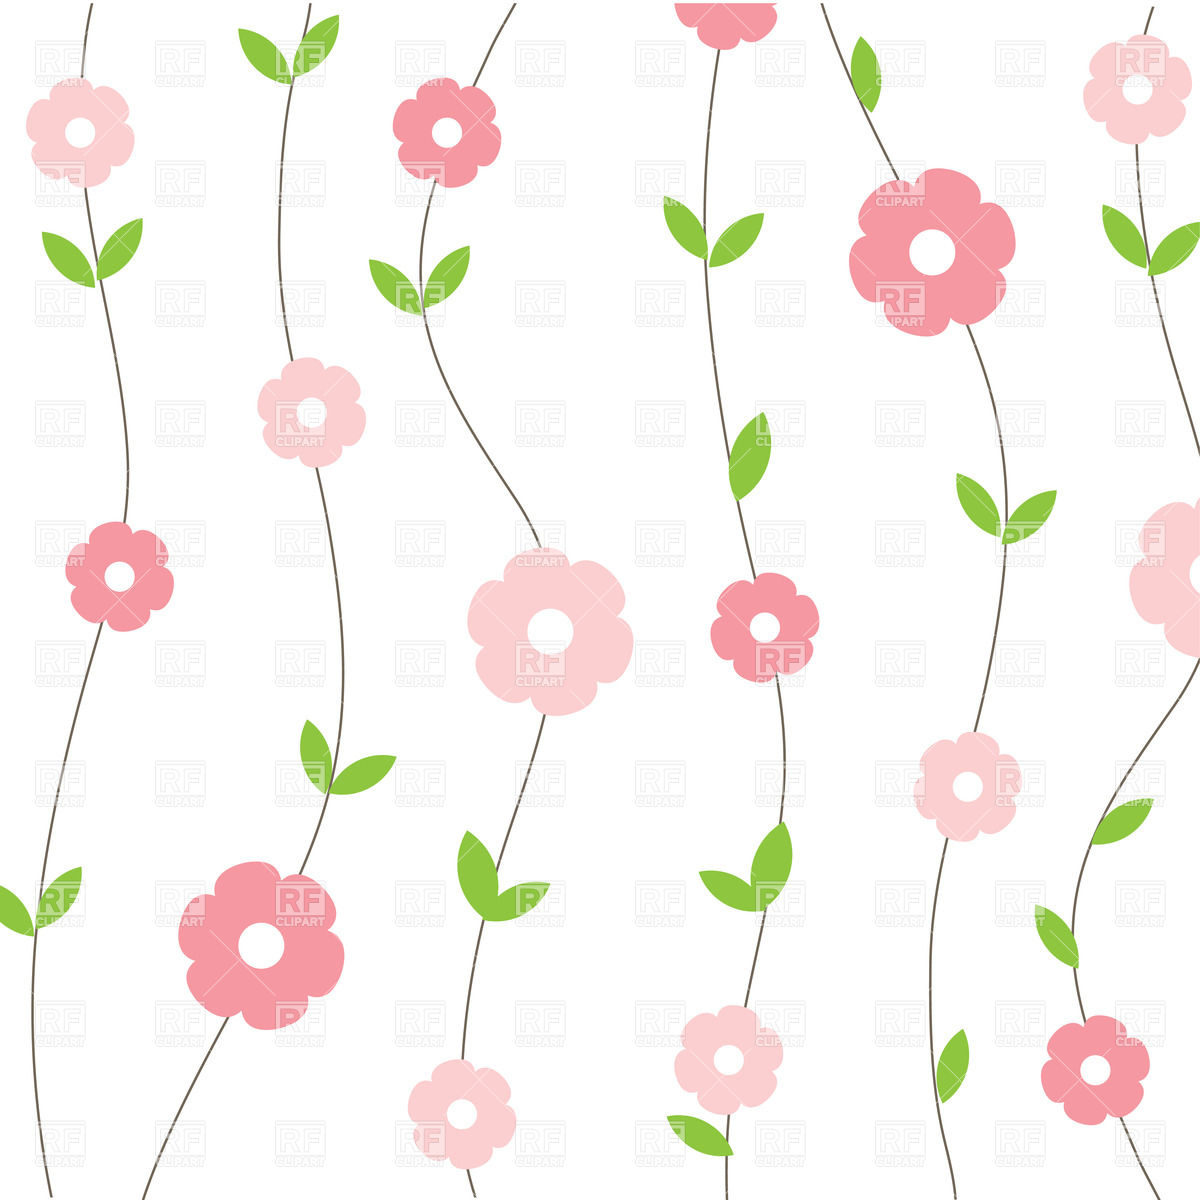 1200x1200 Floral Seamless Background With Cartoon Simple Flowers Royalty